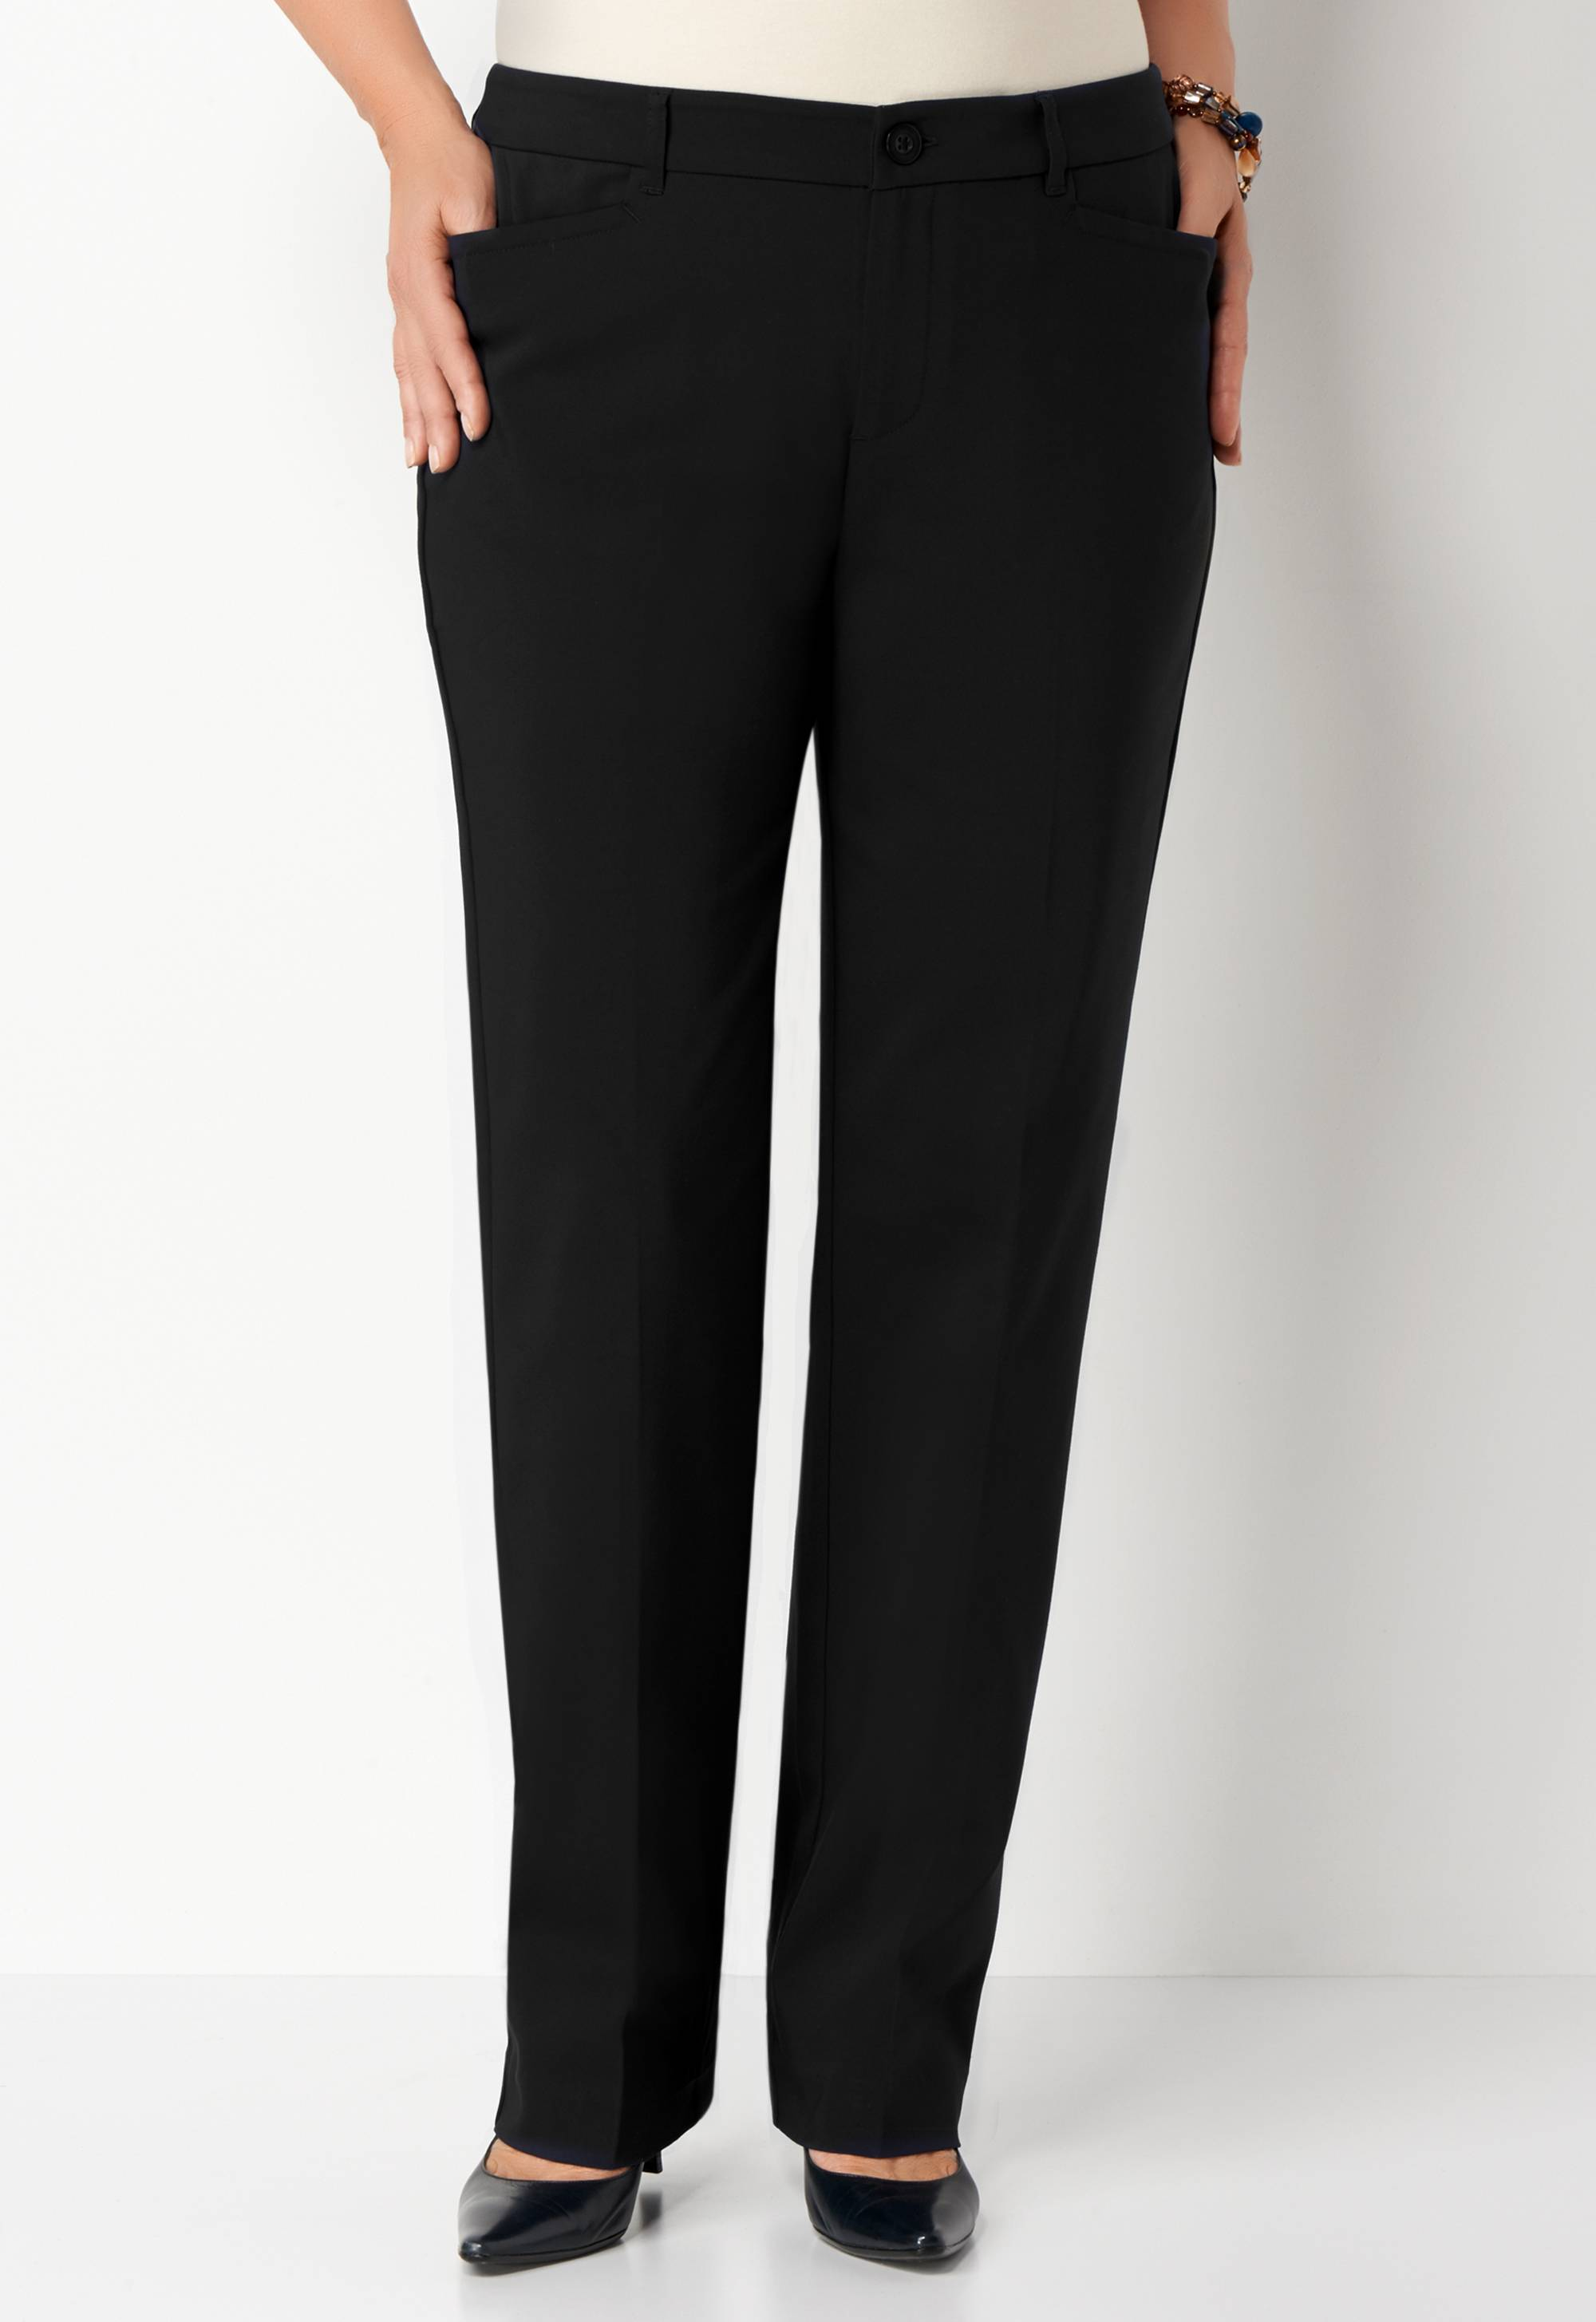 Christopher & Banks Everyday Trouser Pant Short Shaped Fit